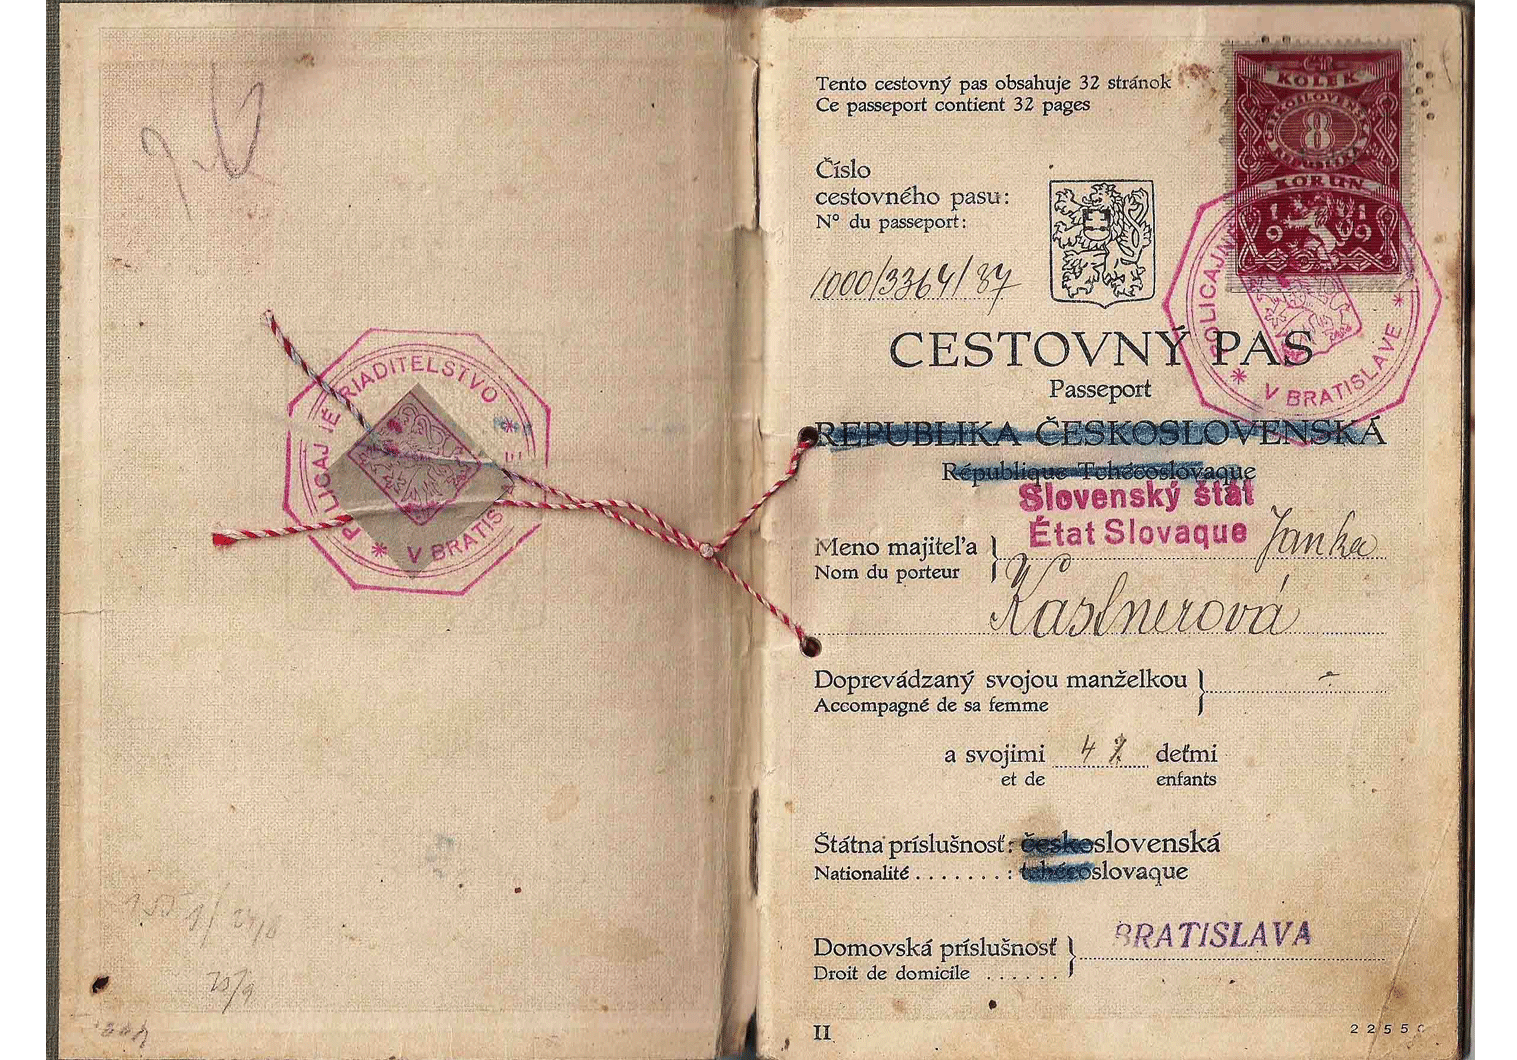 Munich Agreement passport 1938